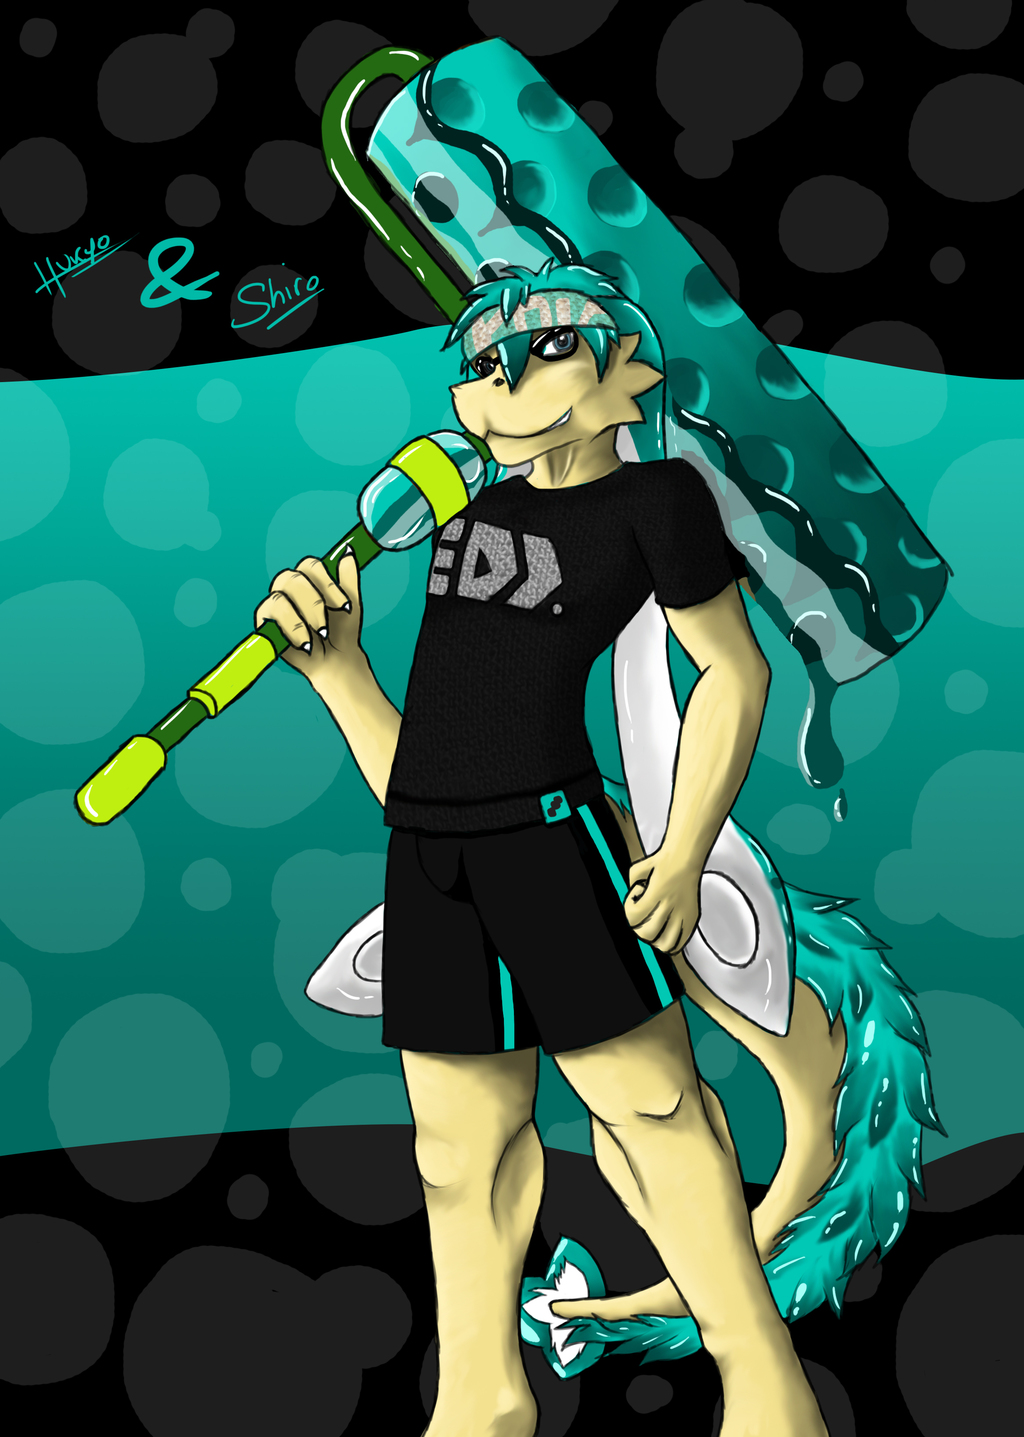 A dragon in Splatoon - Collab with Shiro